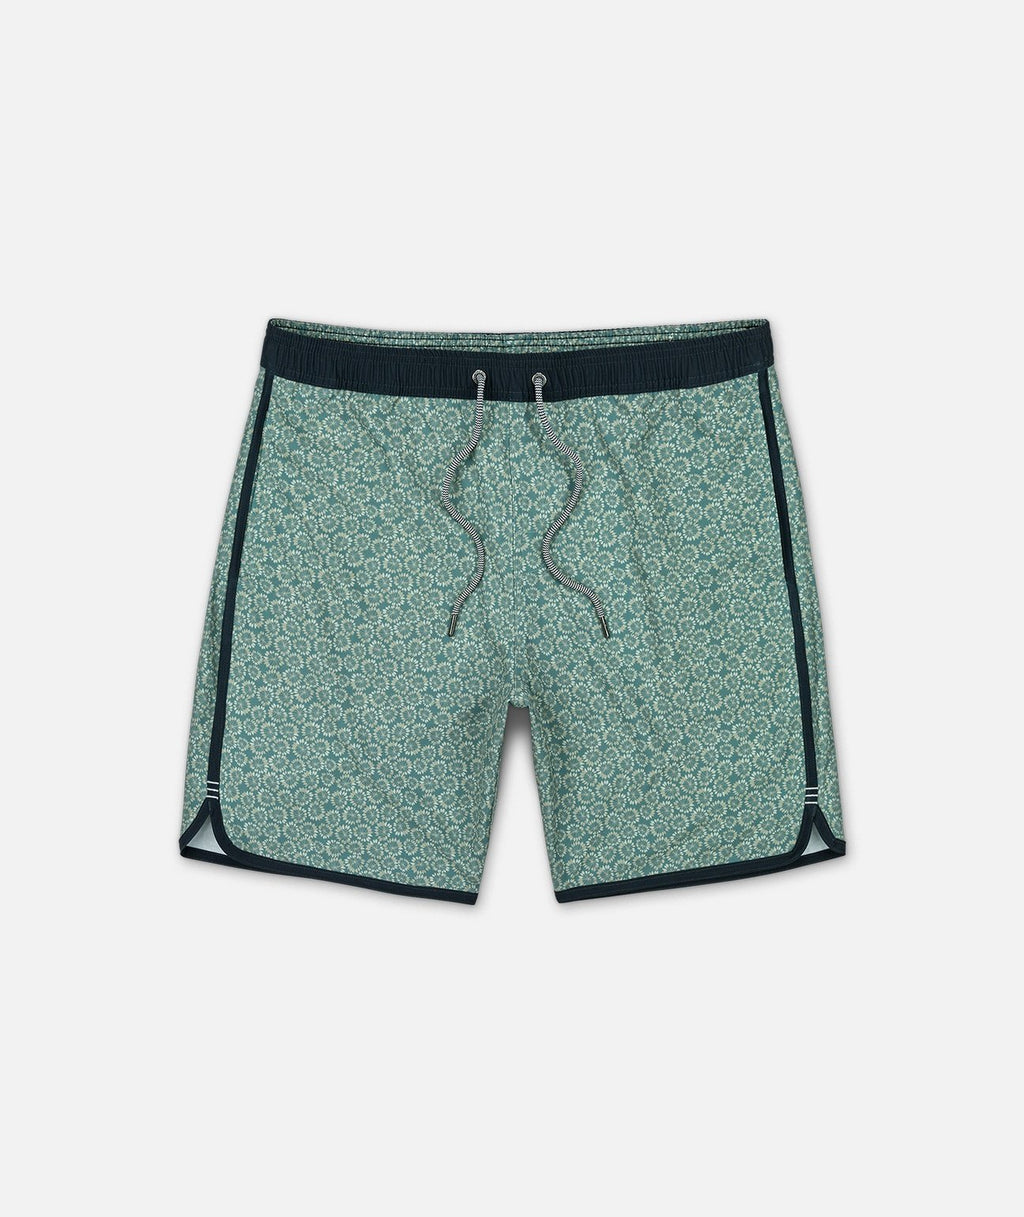 JETTY SESSION BOARDSHORT